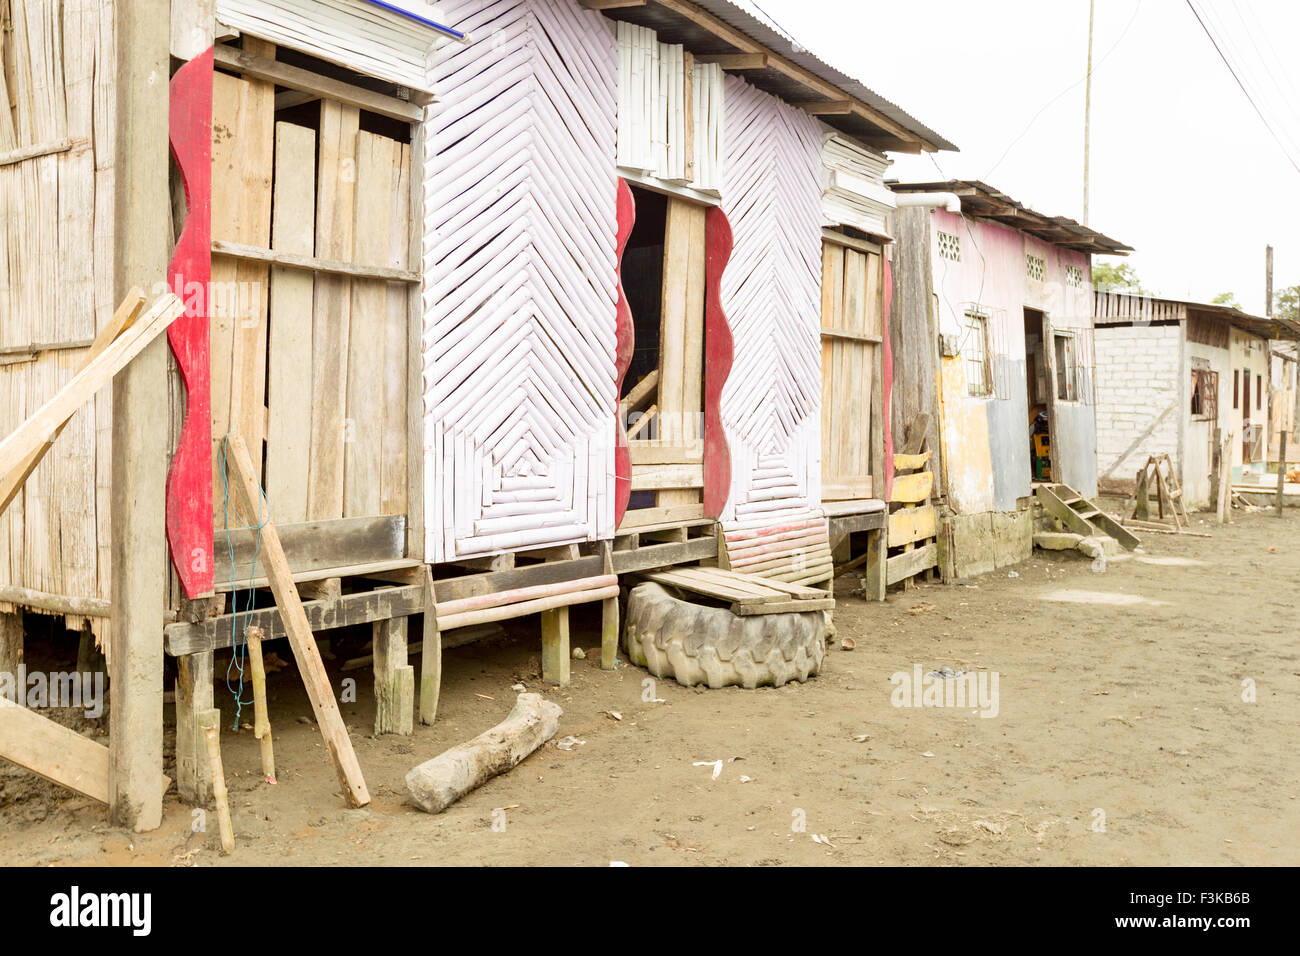 Wood House And Poor Living Conditions - Stock Image